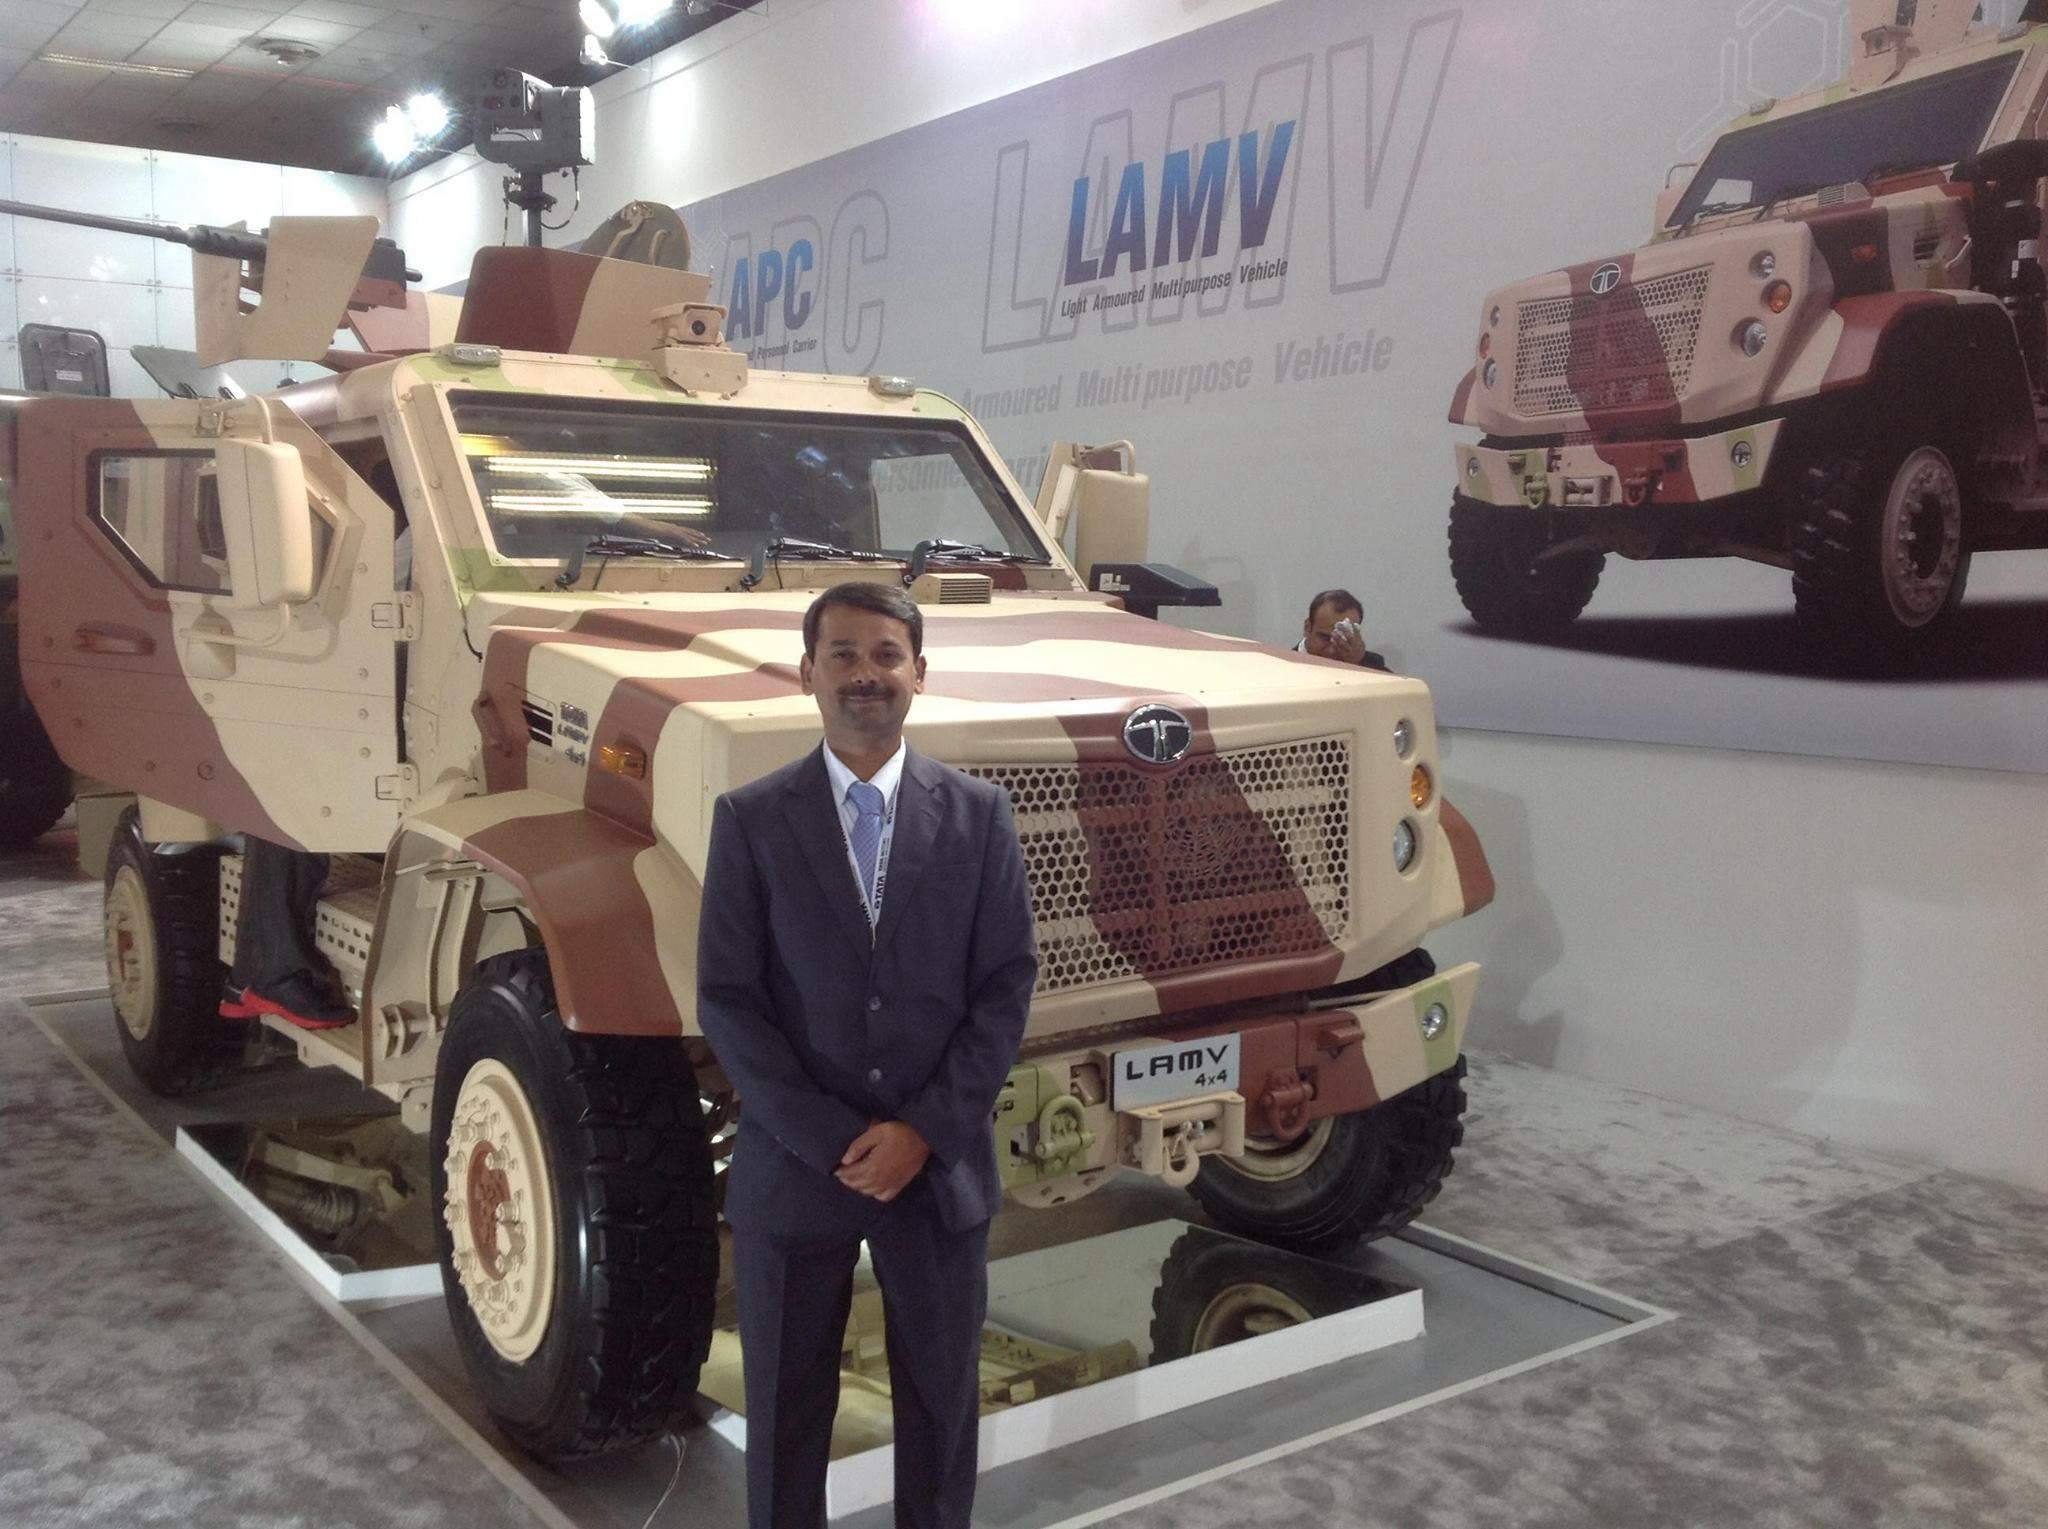 Interview with Pranav Kumar Singh, Head-Marketing, Military Vehicles at Tata Motors Limited